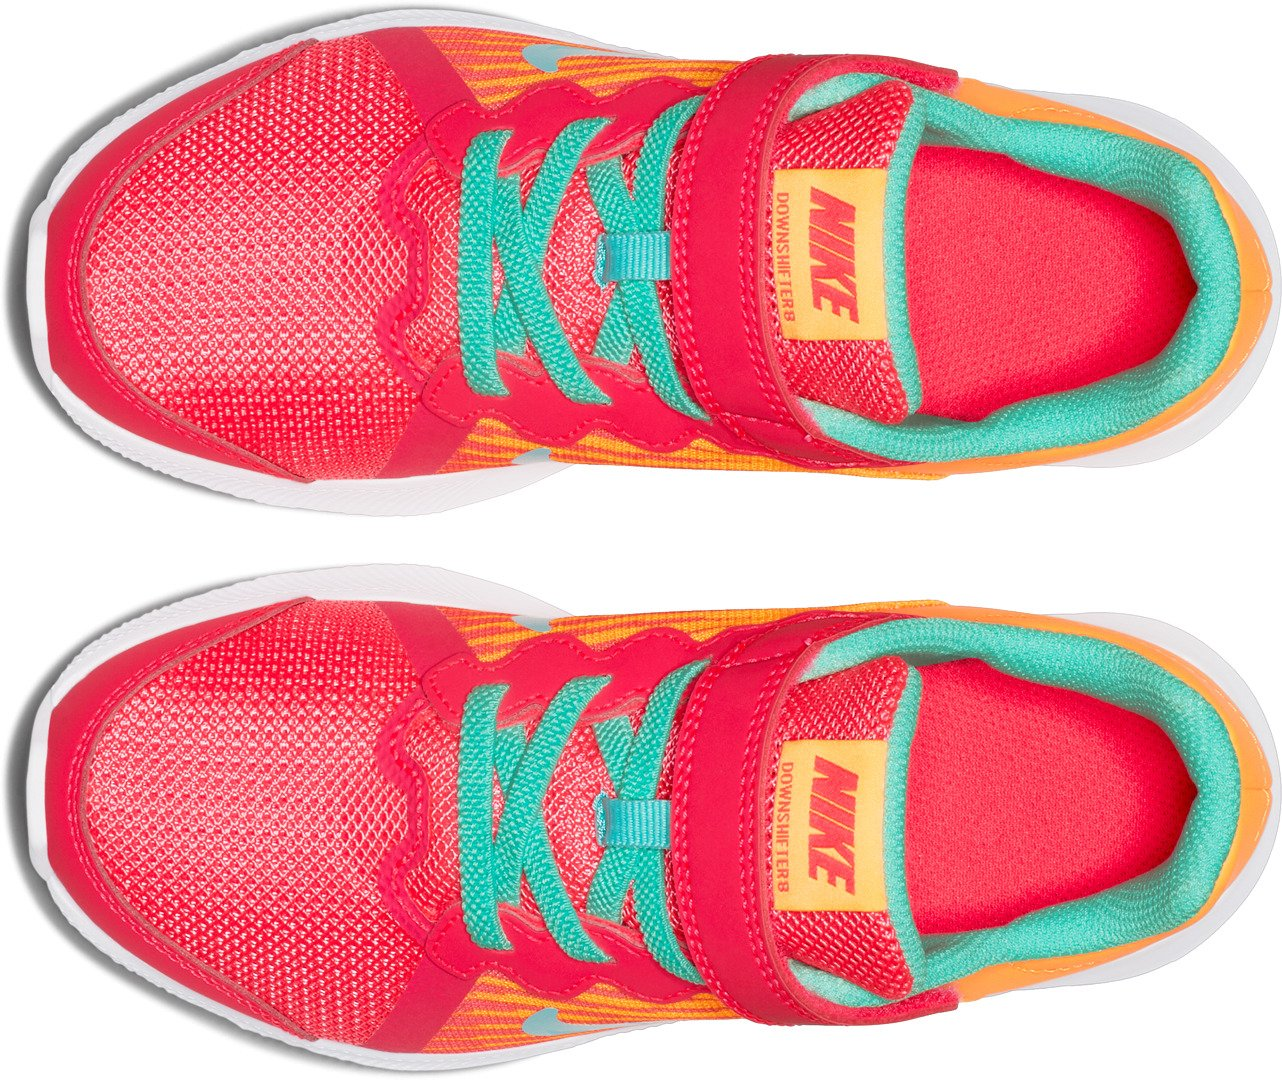 Nike Toddler Girls' Downshifter 8 Fade Running Shoes - view number 1